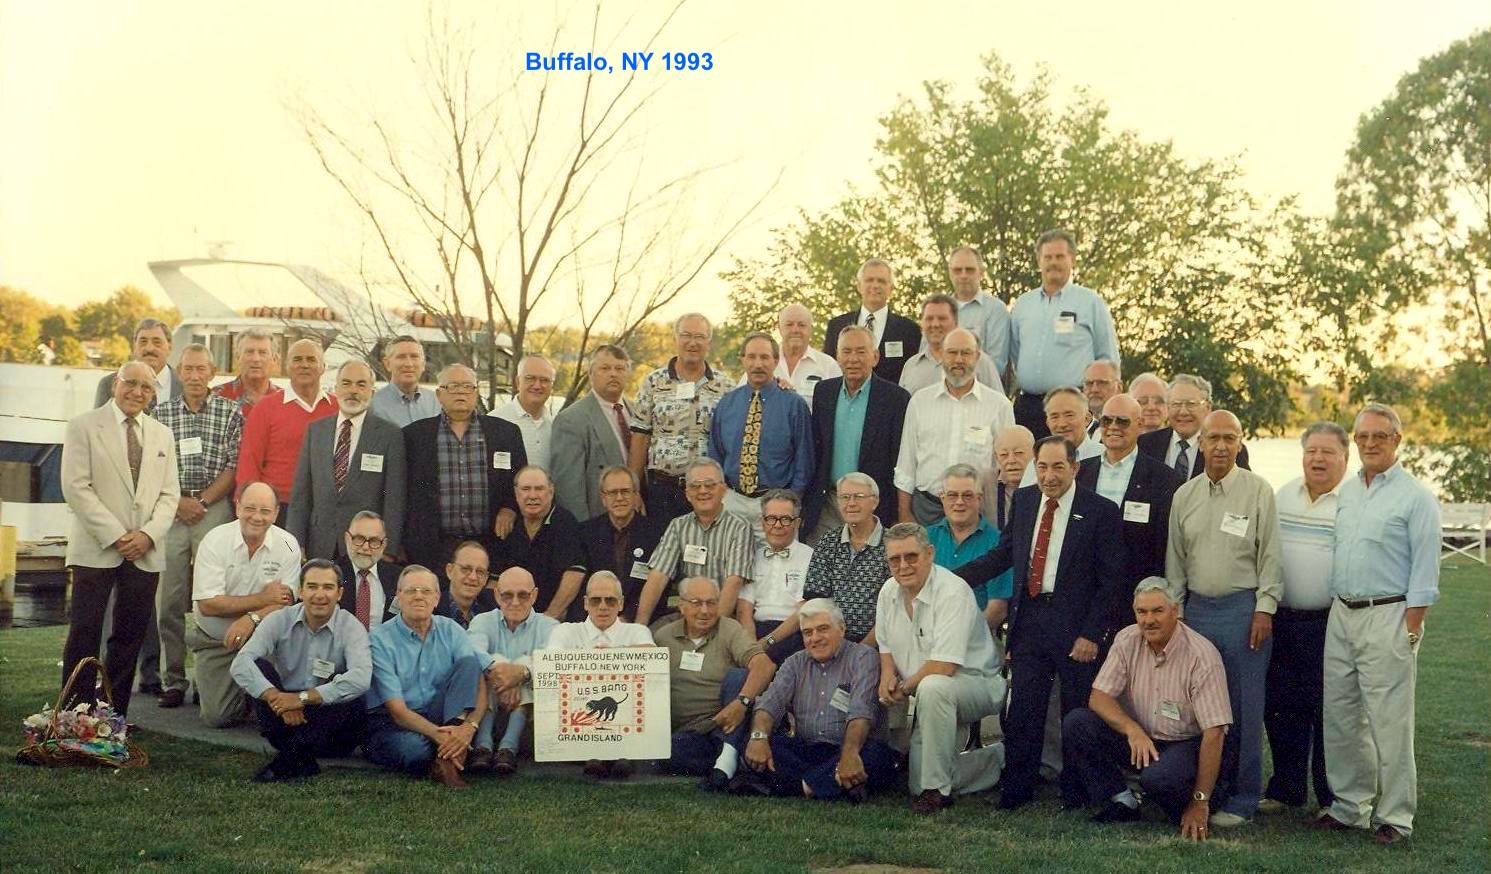 USS Bang 1993 reunion in Buffalo, NY